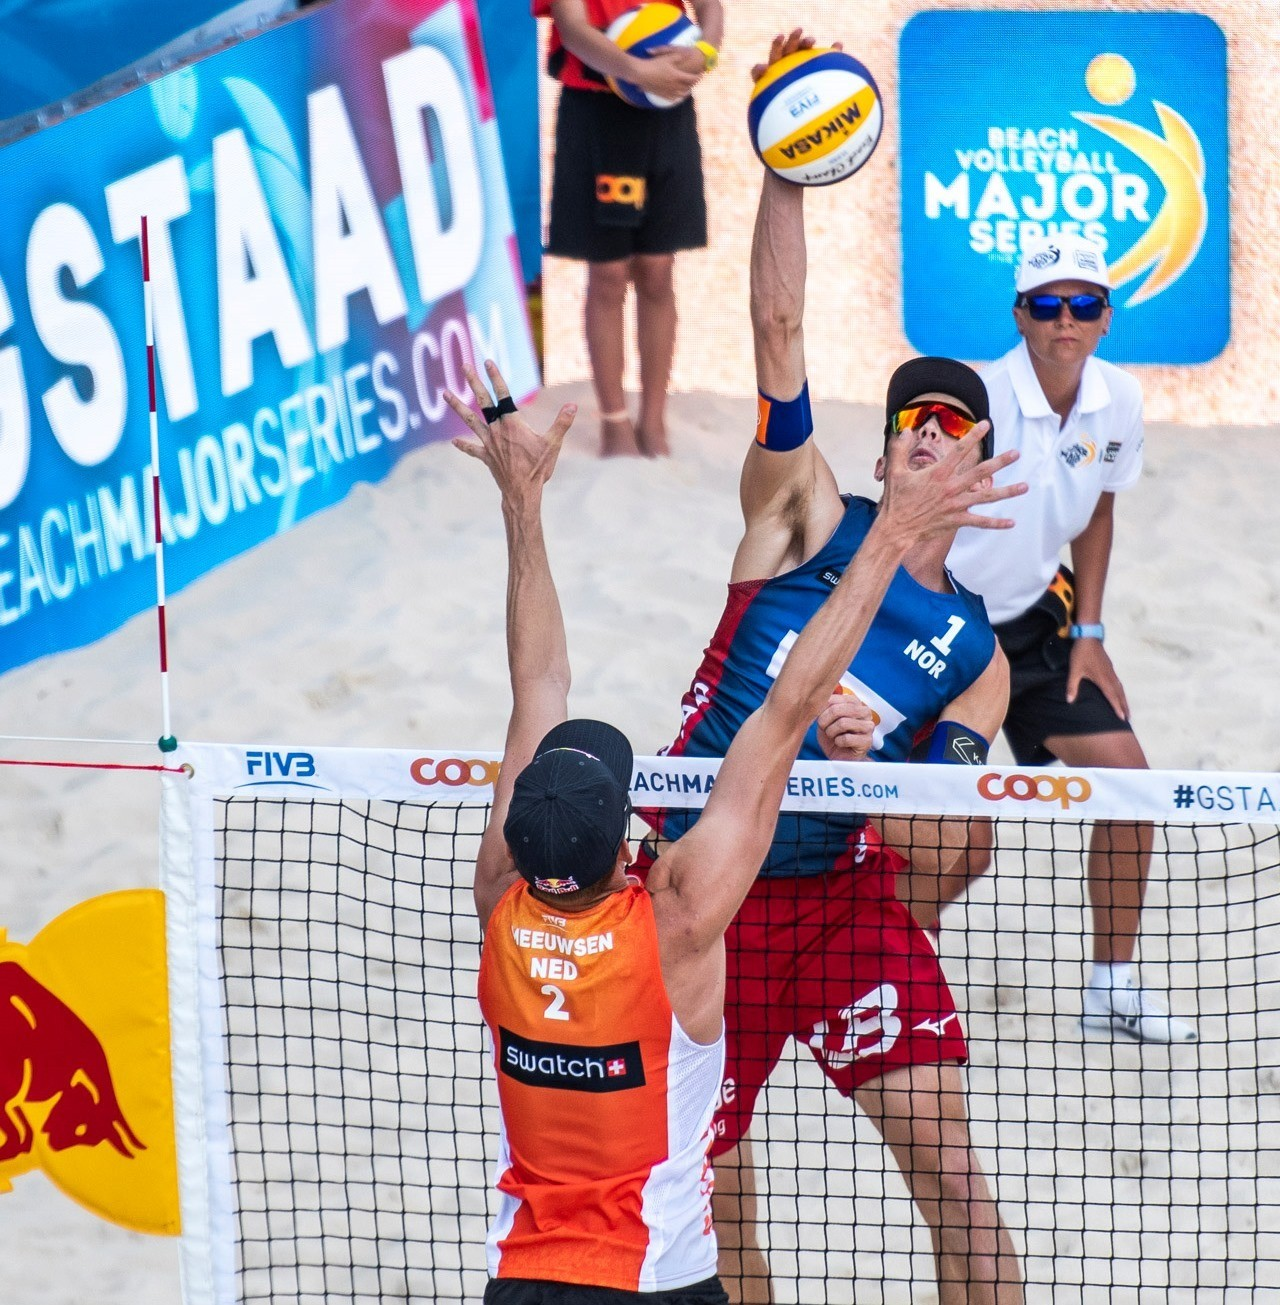 Mol enjoyed a couple of spikes he had against Brouwer and Meeuwsen in Gstaad